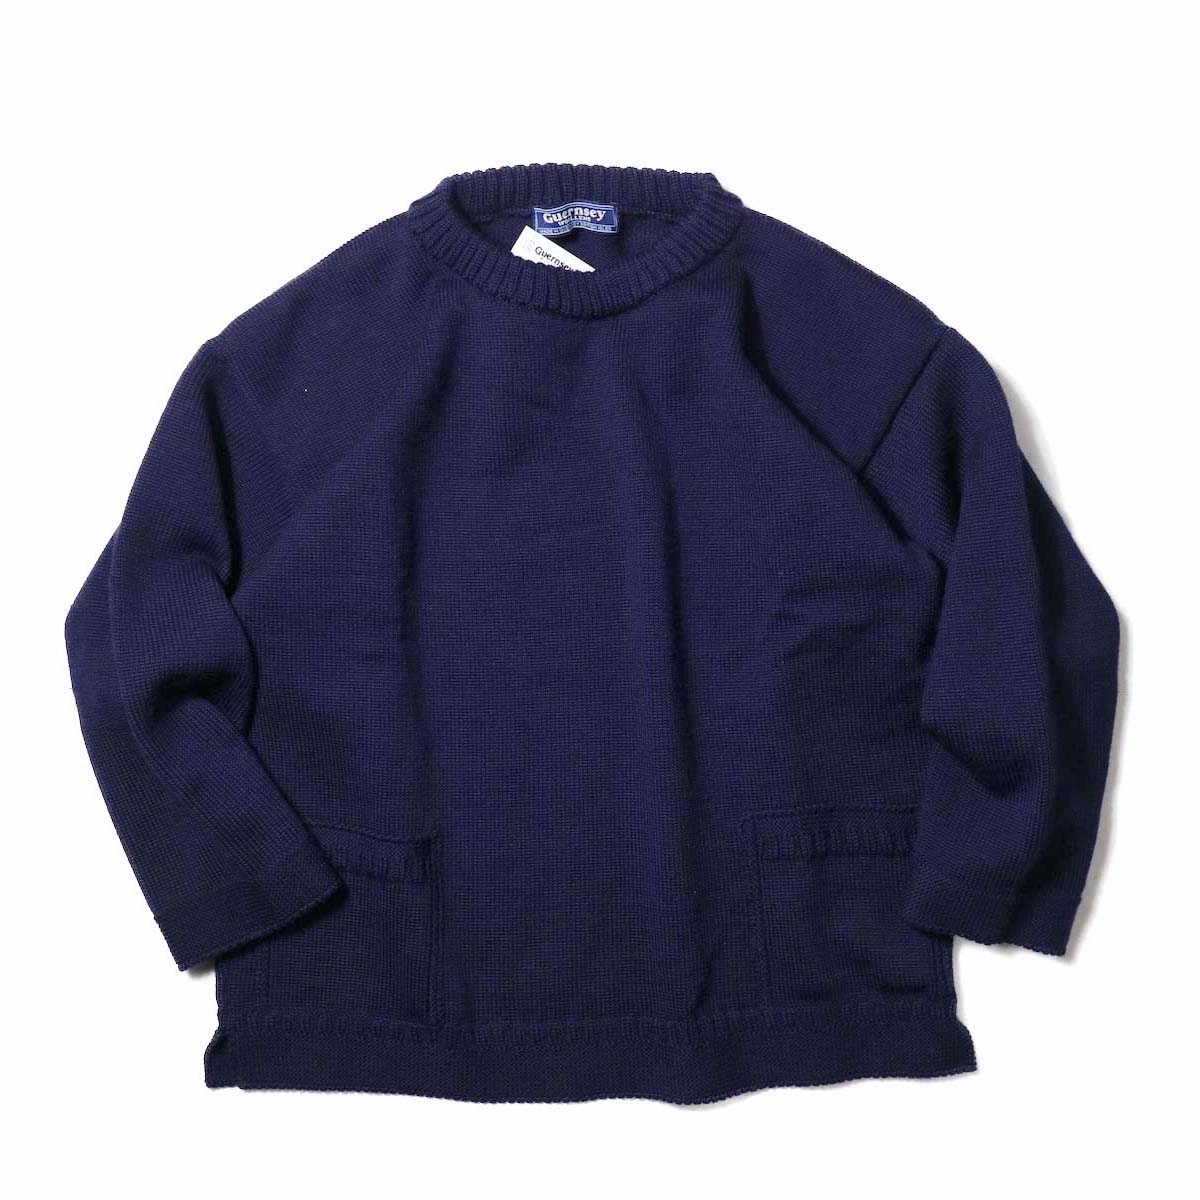 Guernsey Woollens / Reveaux (Navy)正面